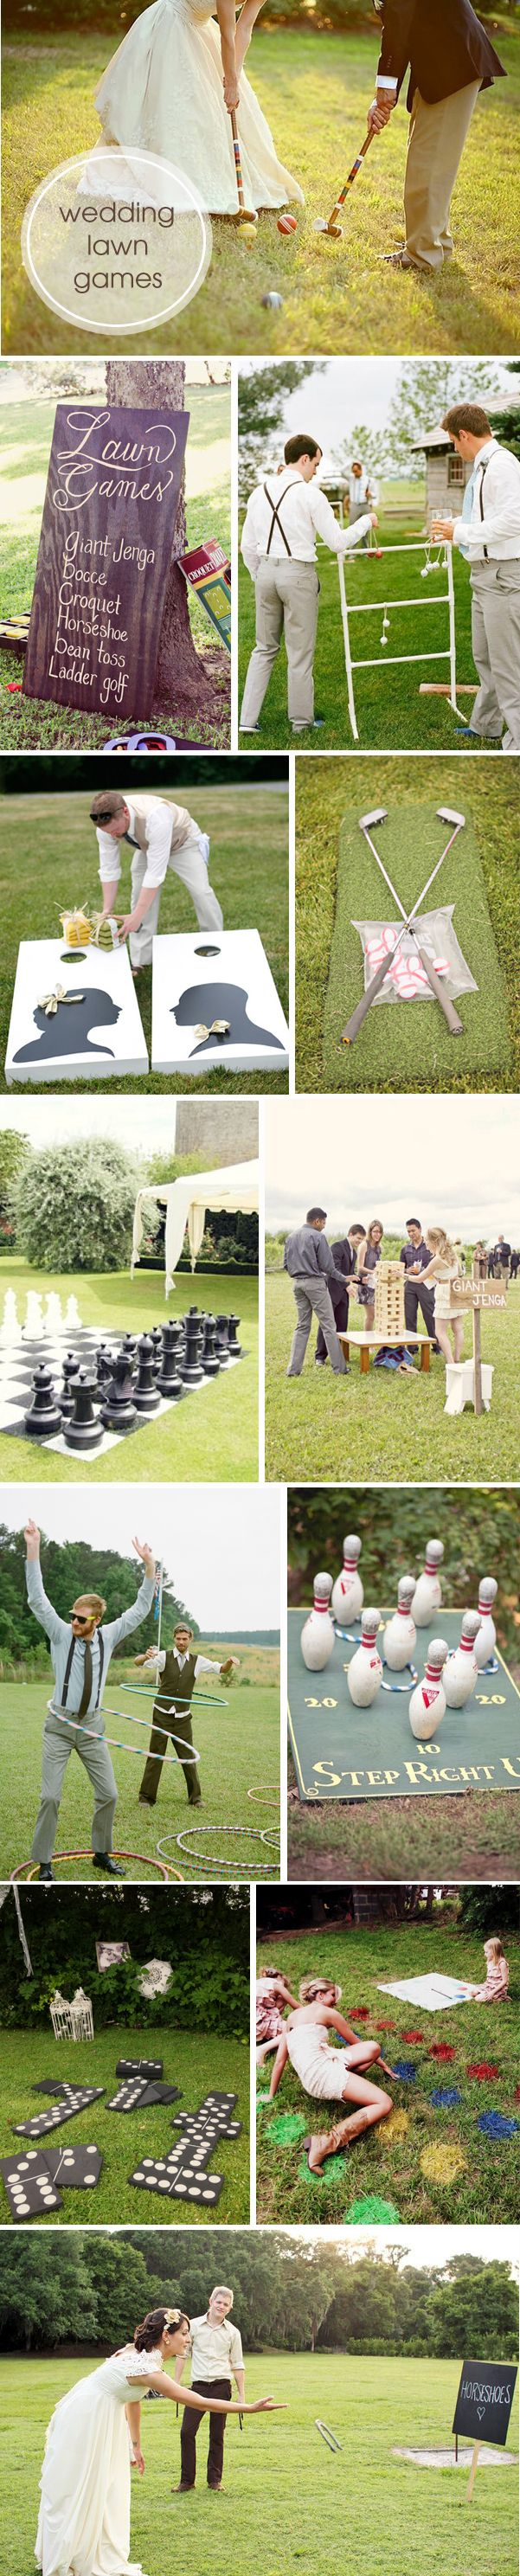 Round-up of super fun and unique wedding lawn games!